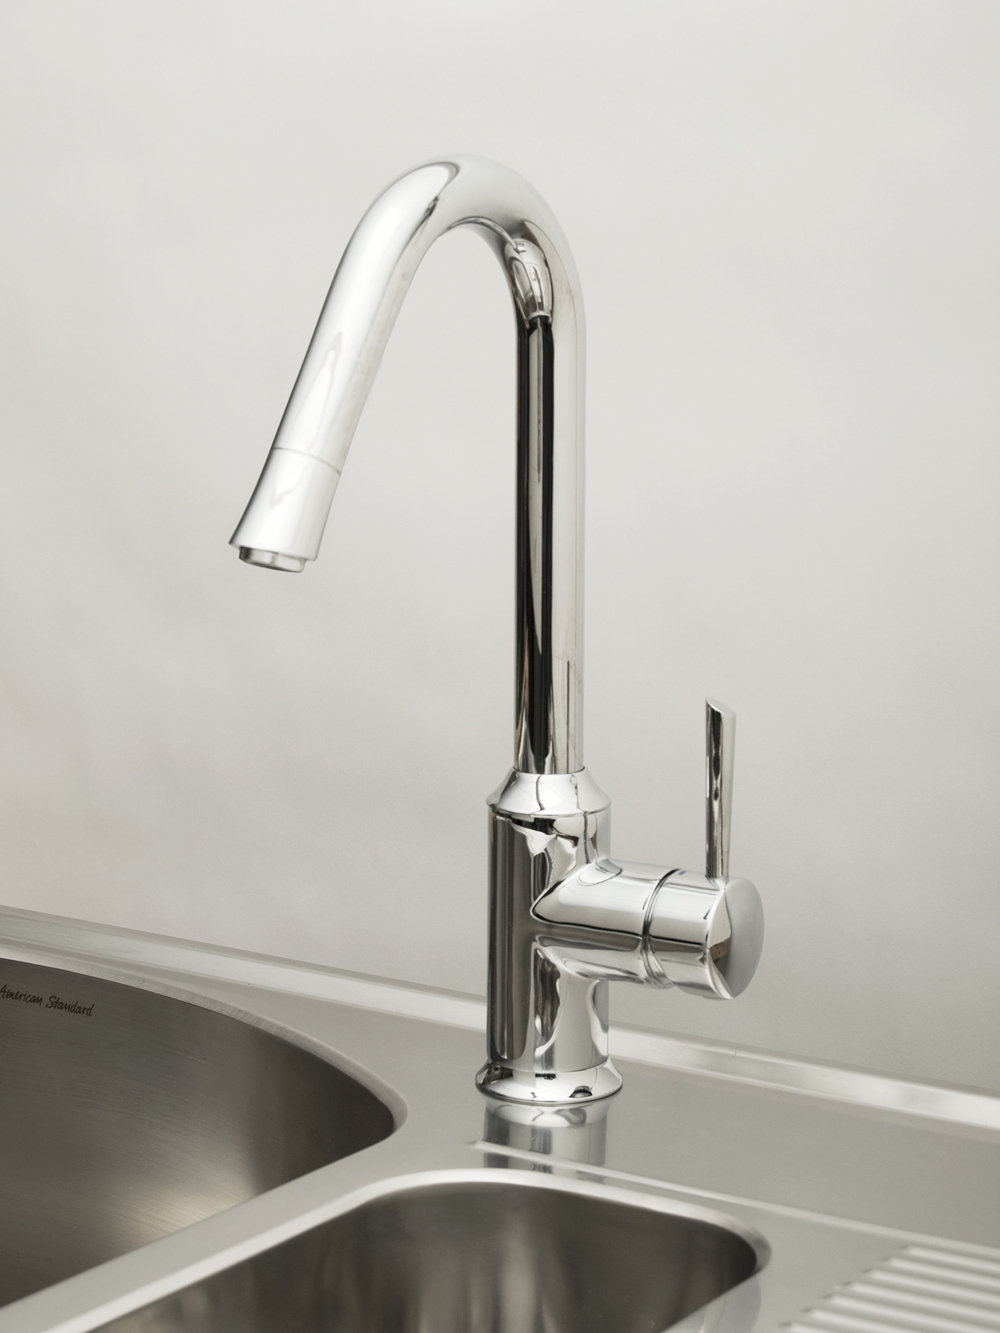 charming American Standard Kitchen Sink Faucets #2: The American Standard Pekoe pull-down kitchen faucet will keep its finish  throughout its lifetime